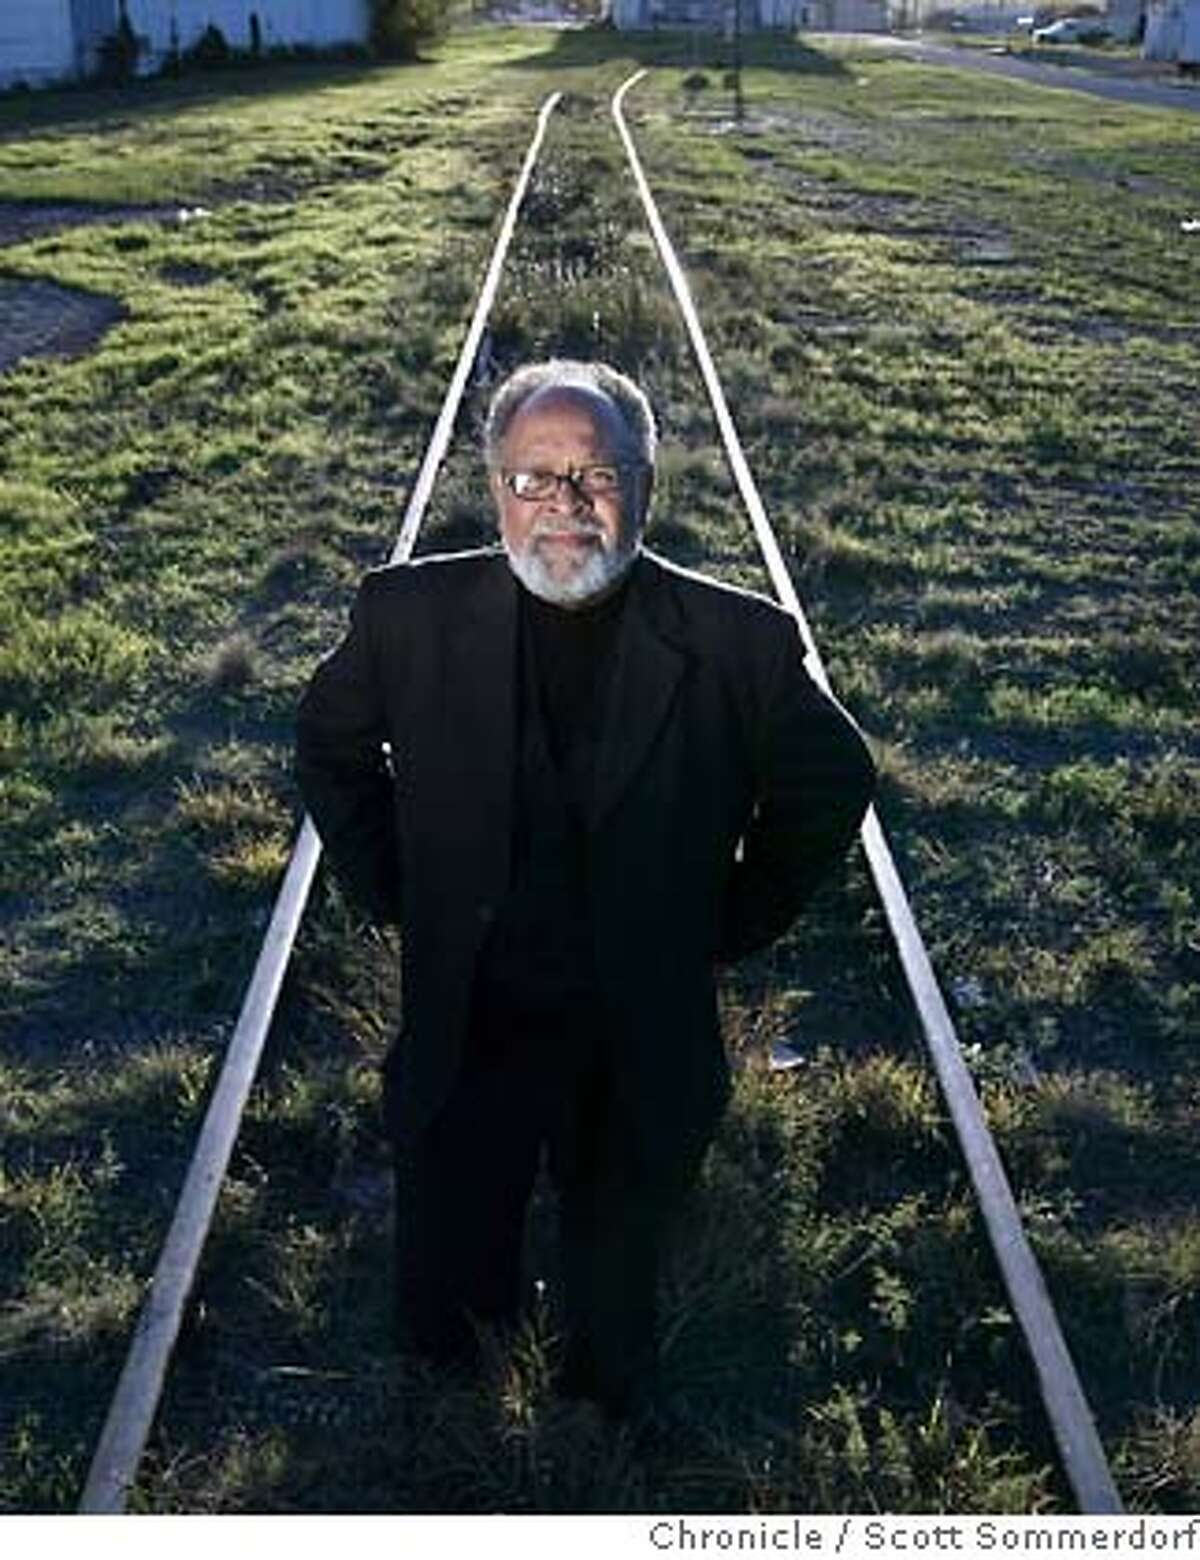 GLIDE minister Cecil Williams stands on the tracks that divided the black and white parts of town in San Angelo, Texas when he was a booy growing up there. He held a press conference on this spot during his visit to his hometown to bring attention to the racial divide that still remains in that place. SF CHRONICLE PHOTO BY SCOTT SOMMERDORF